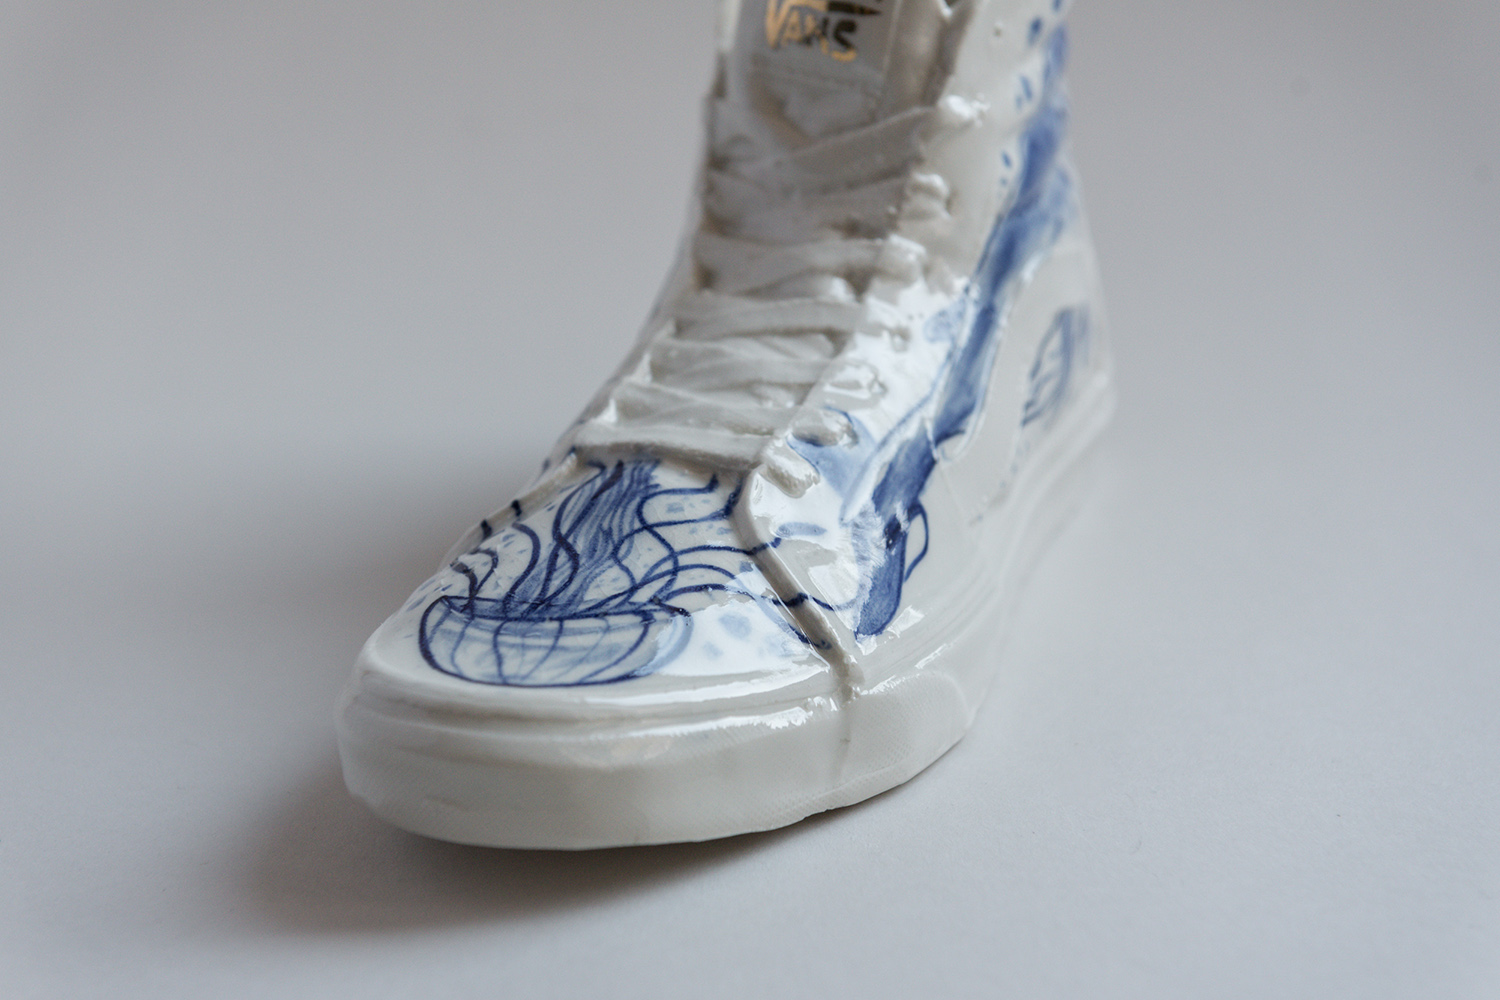 vans whale shoes skate svae the sea antikapratika ceramic art berlin .jpg